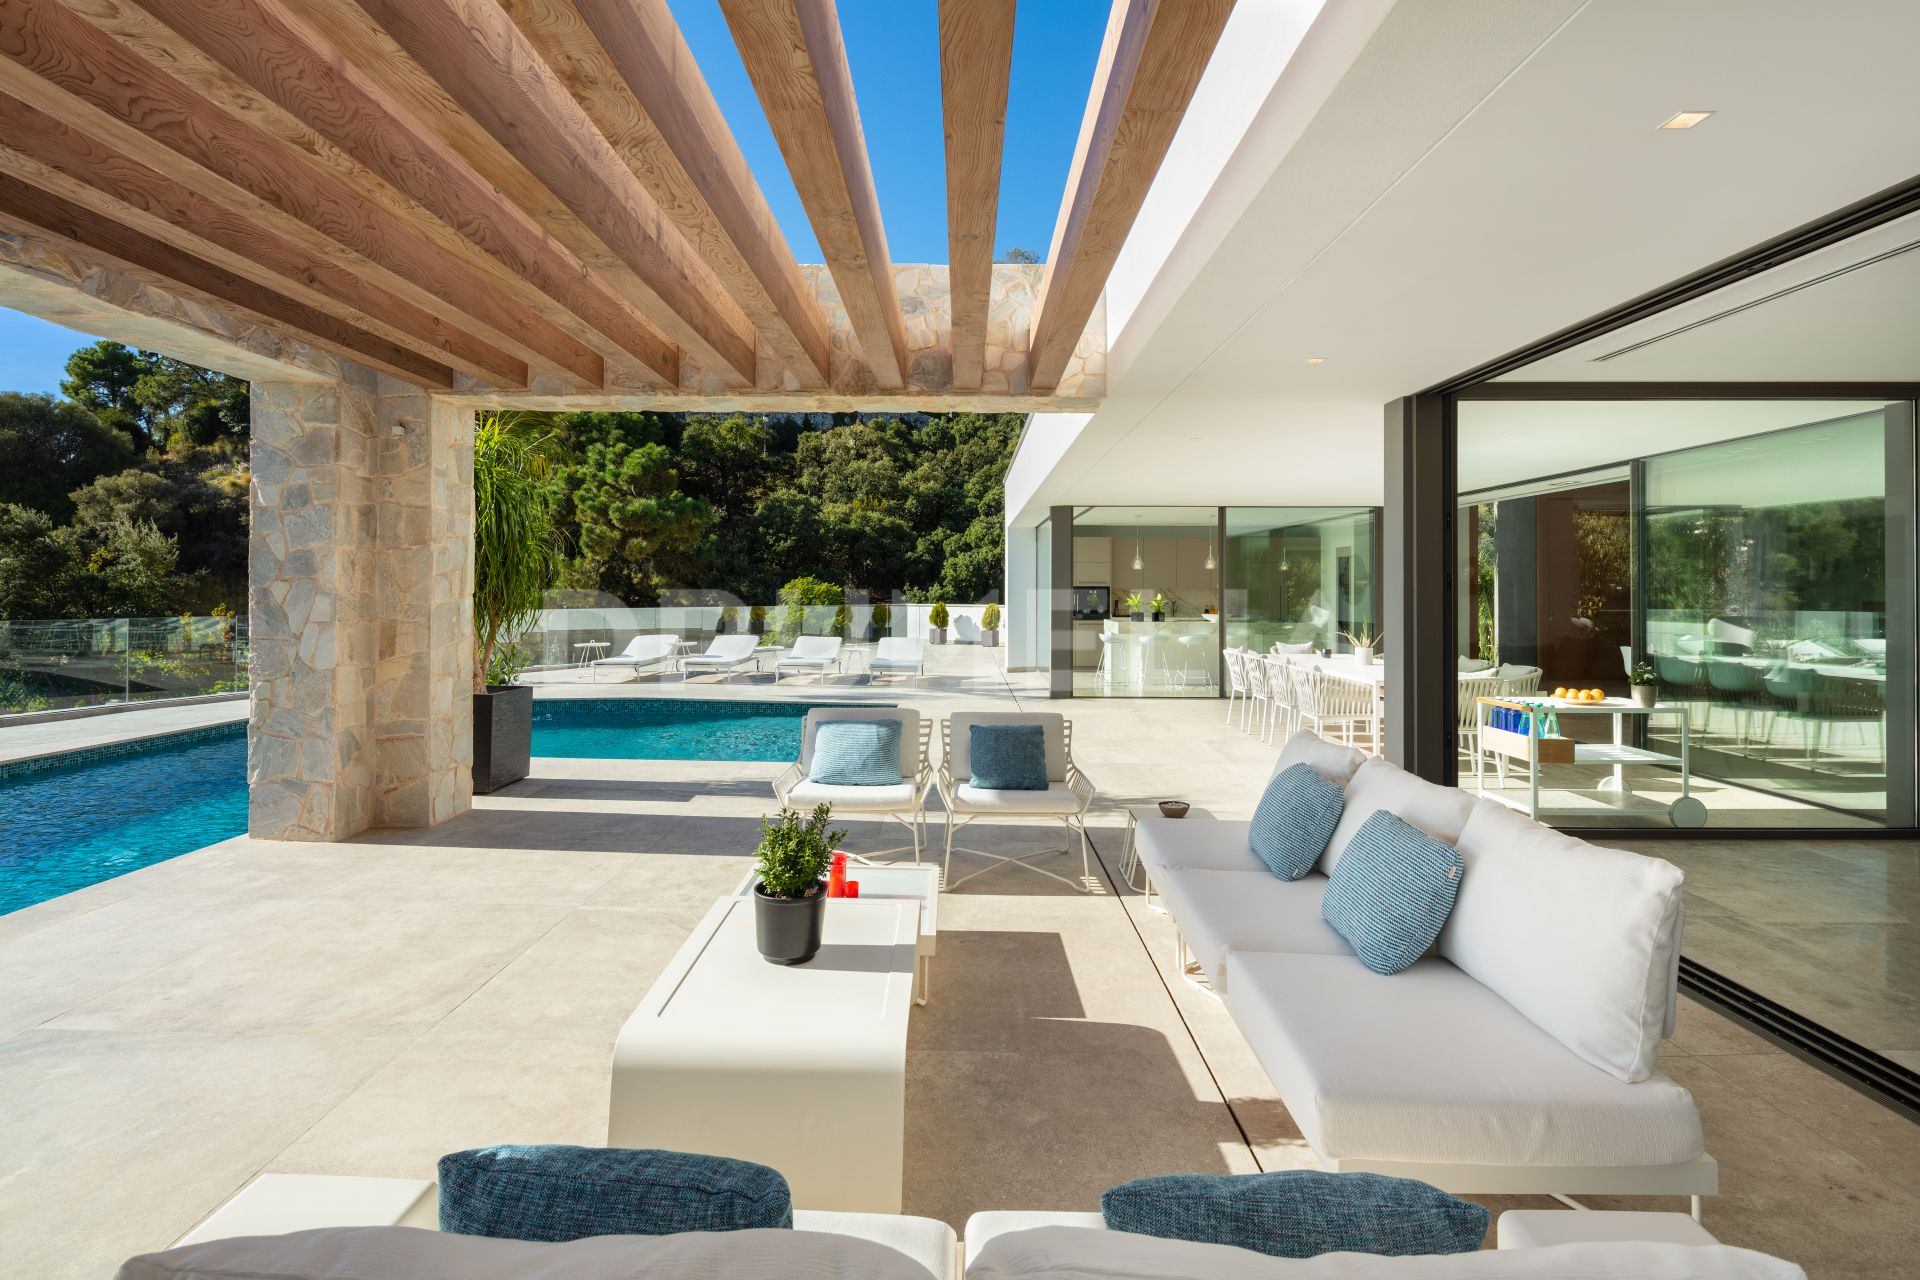 Villa for sale in El Herrojo, Benahavis